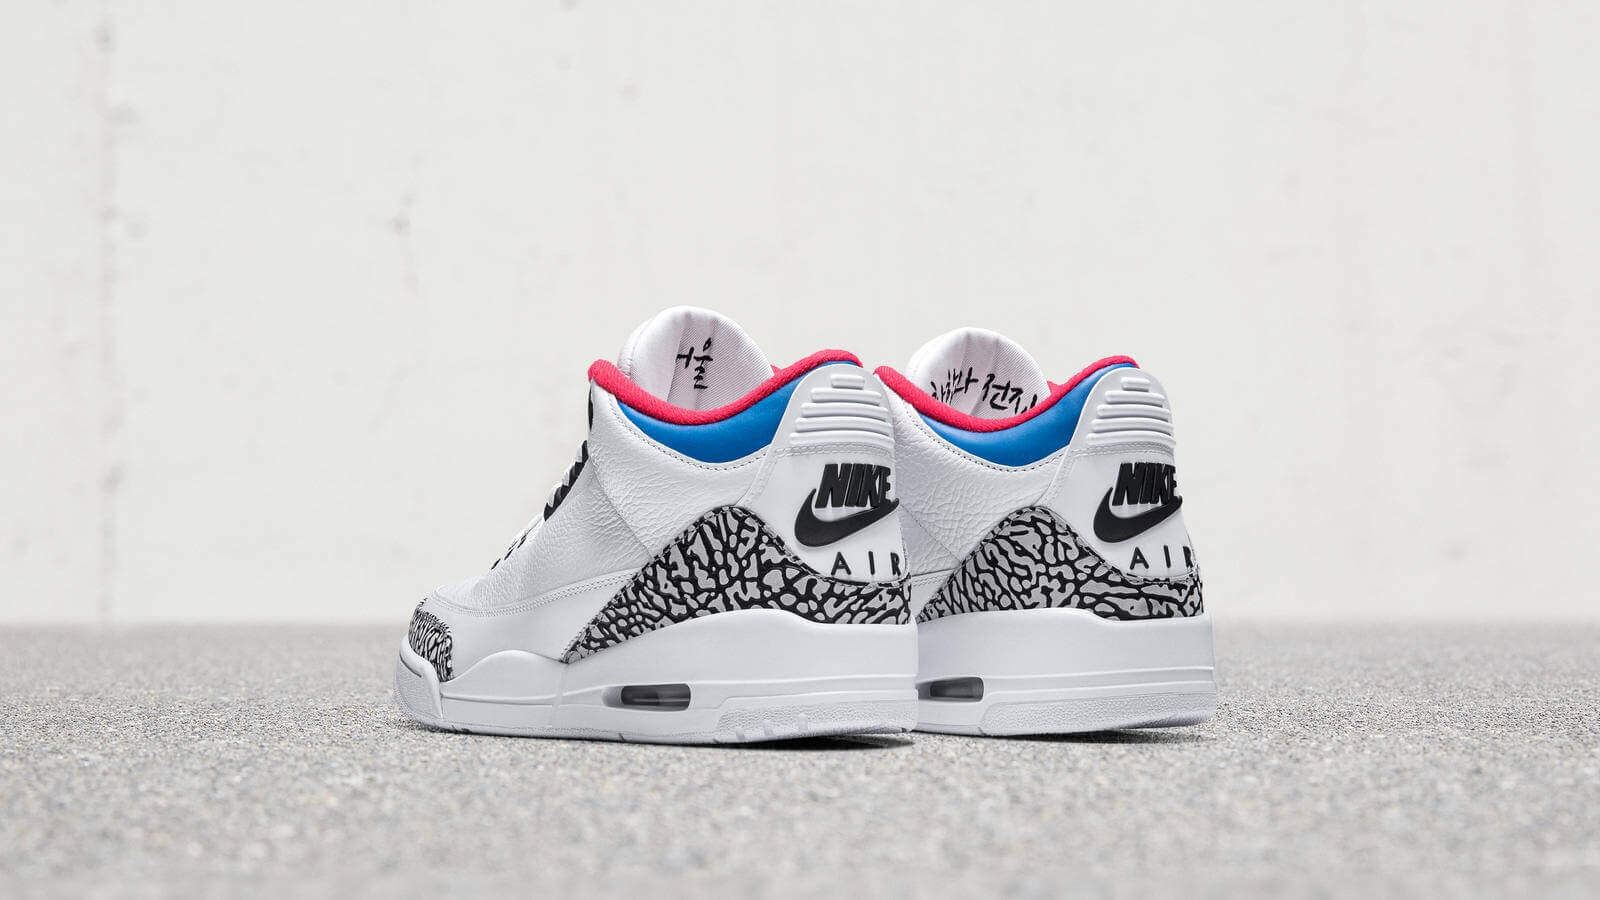 The Air Jordan 3 III Seoul Was Another Strategic Move By Nike